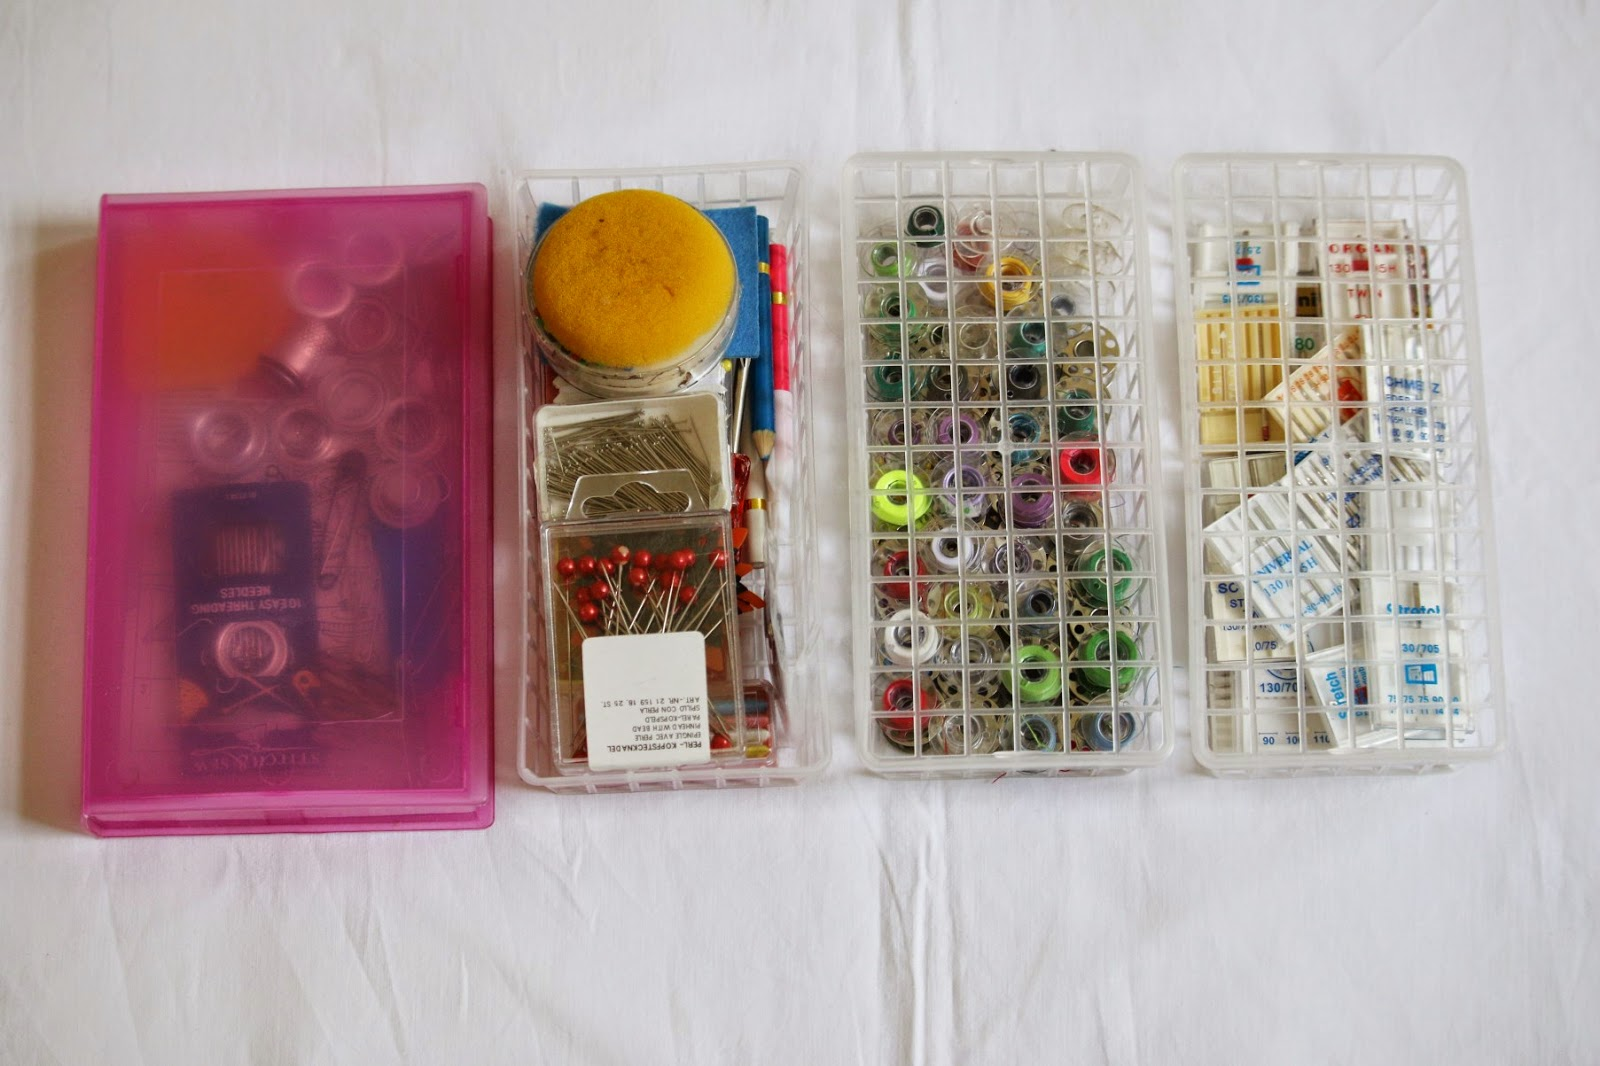 Organisiert mit VHS-Hülle und Physaliskörbchen / Organized with the help of a VHS cover and some physalis baskets / Upcycling